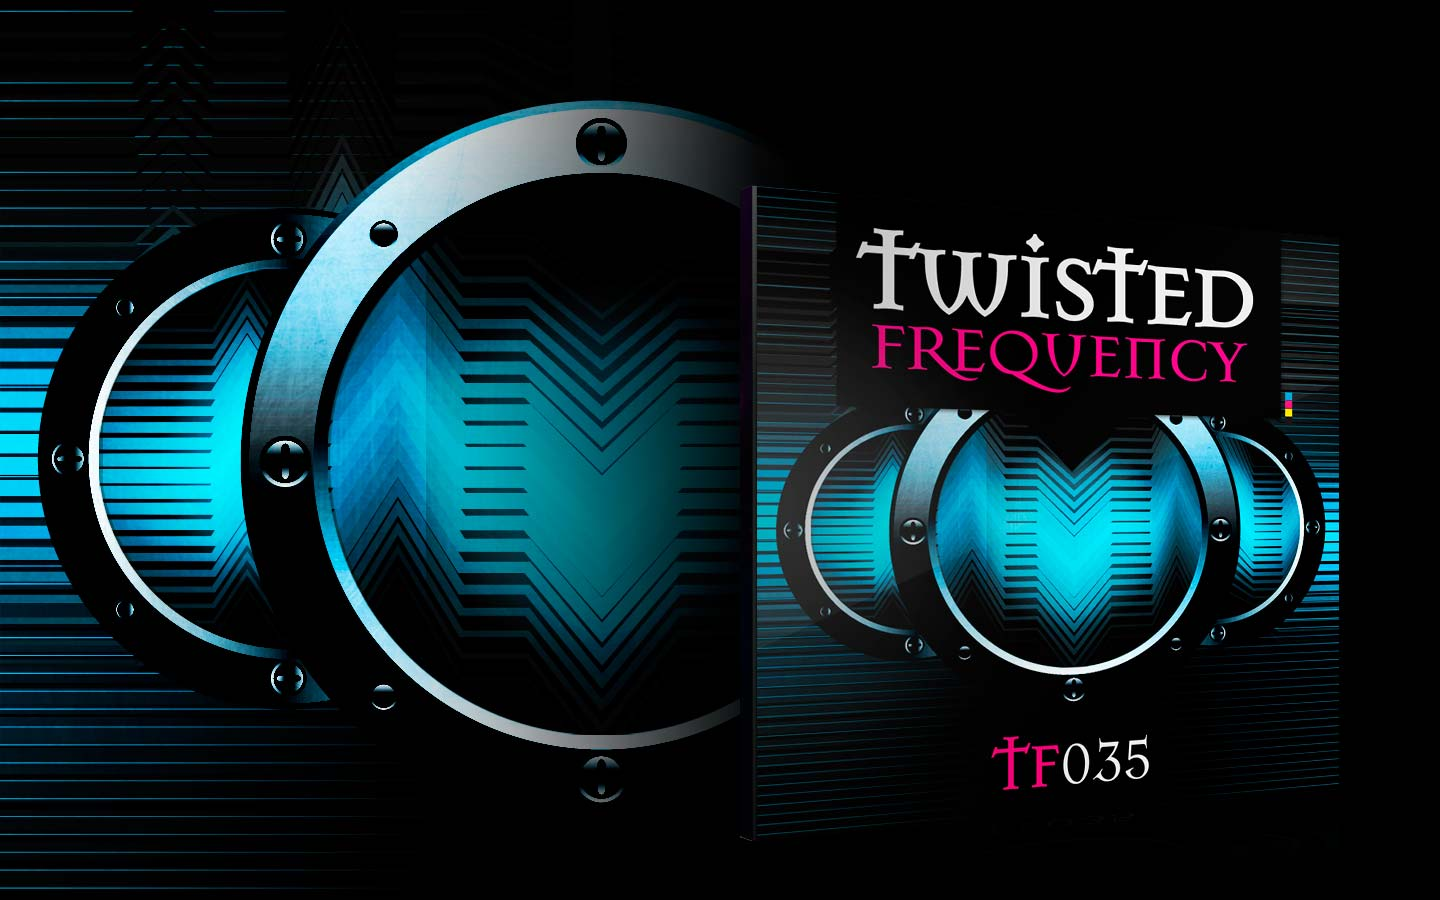 Twisted Frequency - CD Cover - Laurent Lemoigne - Donanubis - Don Anubis - Graphic Design - Record Label - Techno - Minimal - House - UK